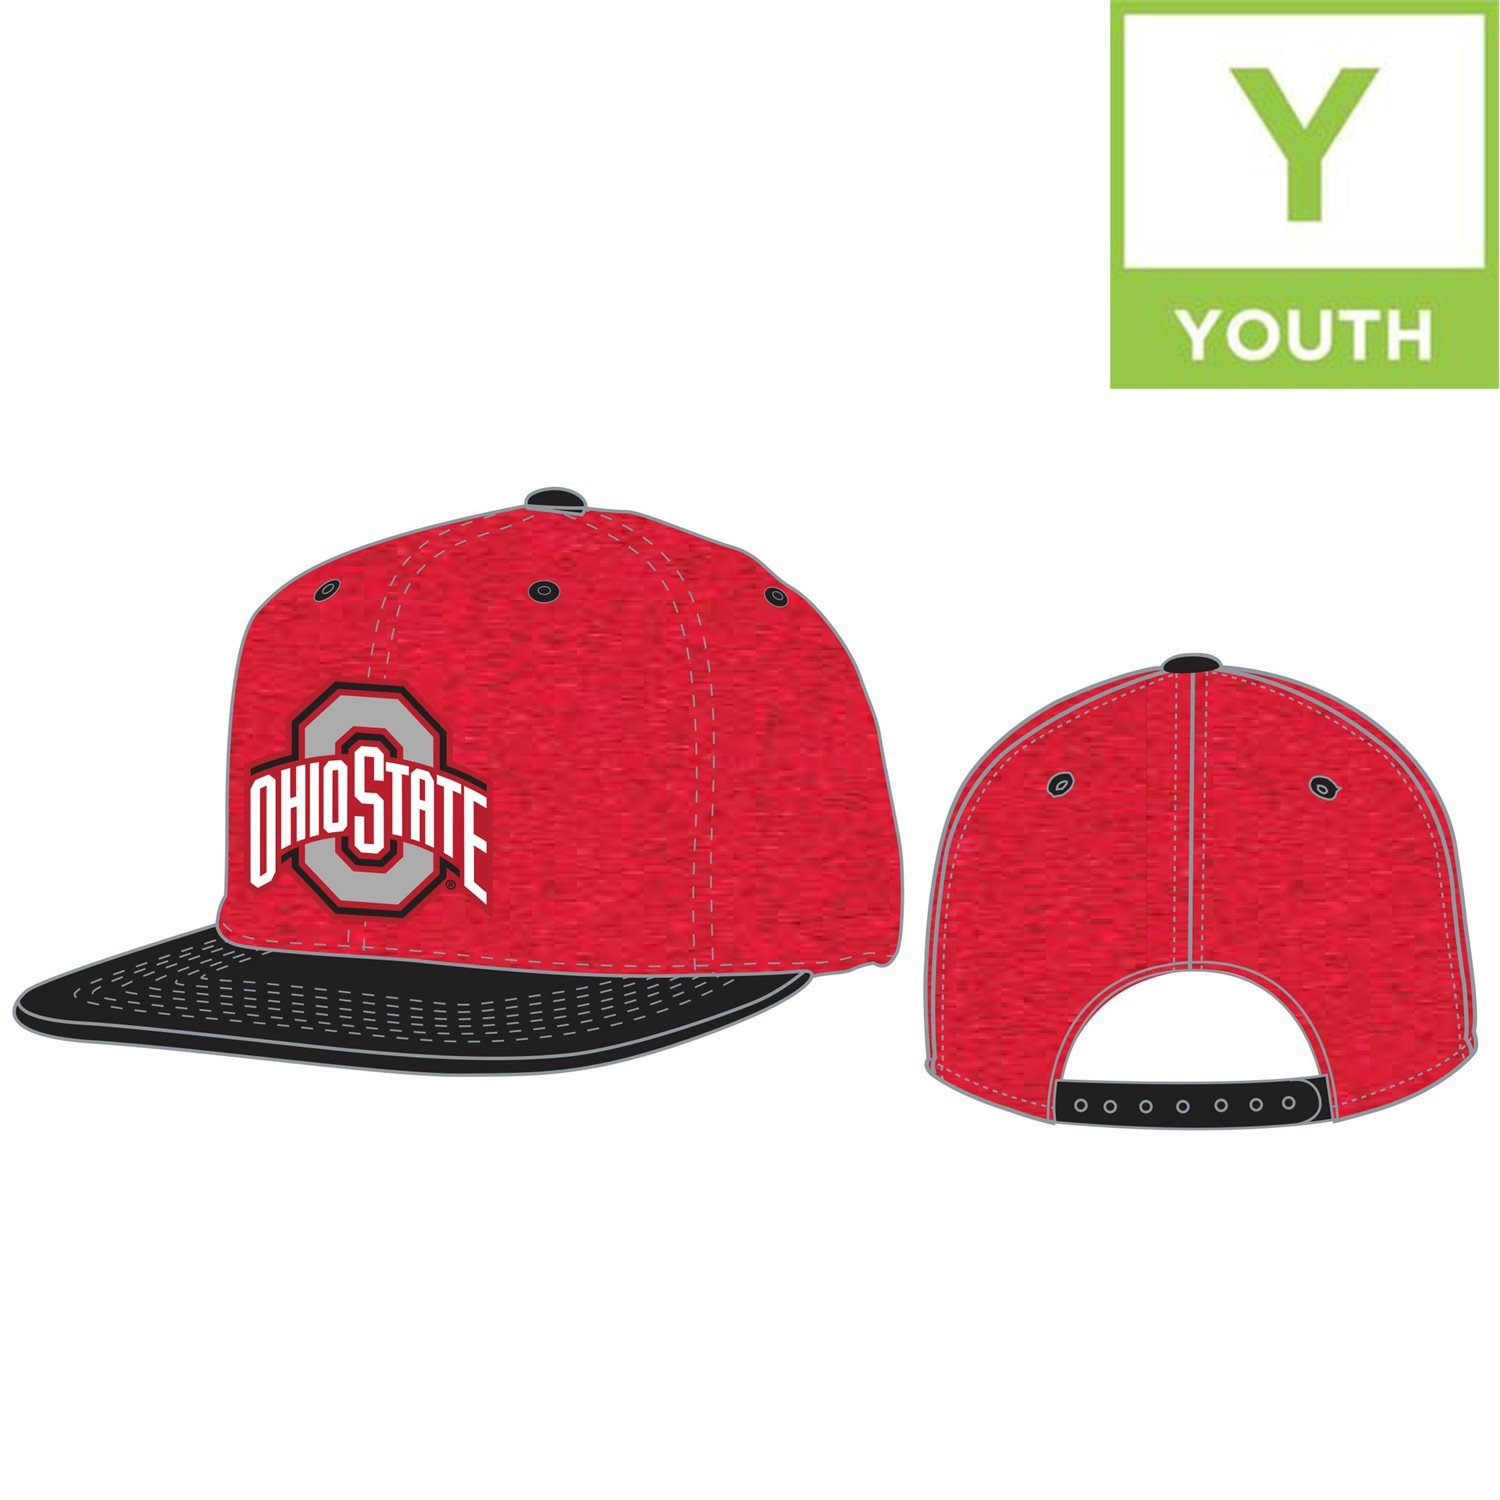 promo code 6d57f 5a148 Top of the World Ohio State Buckeyes Official NCAA Adjustable Youth Energy  1 Hat Cap Flat Bill 206325  Amazon.com.au  Sports, Fitness   Outdoors